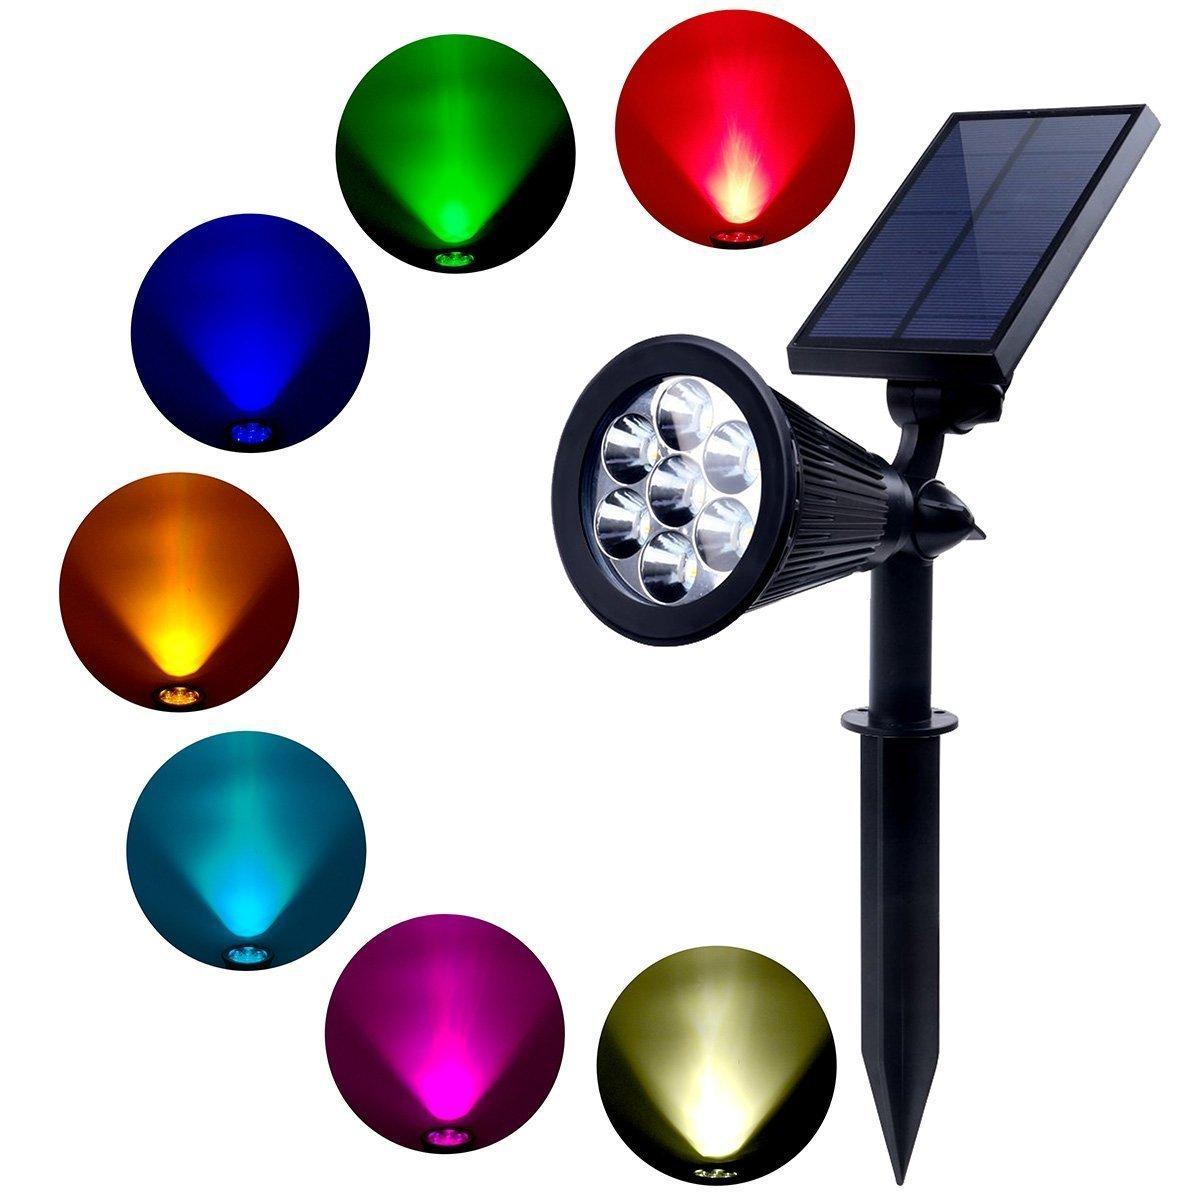 MEIO Outdoor Solar Spotlight, Multi-Colored 7 LED Adjustable Landscape Lighting, Waterproof Wall Light Solar Lights Outdoor with Auto On/Off for Garden Decorations (1 Pack) by MEIO